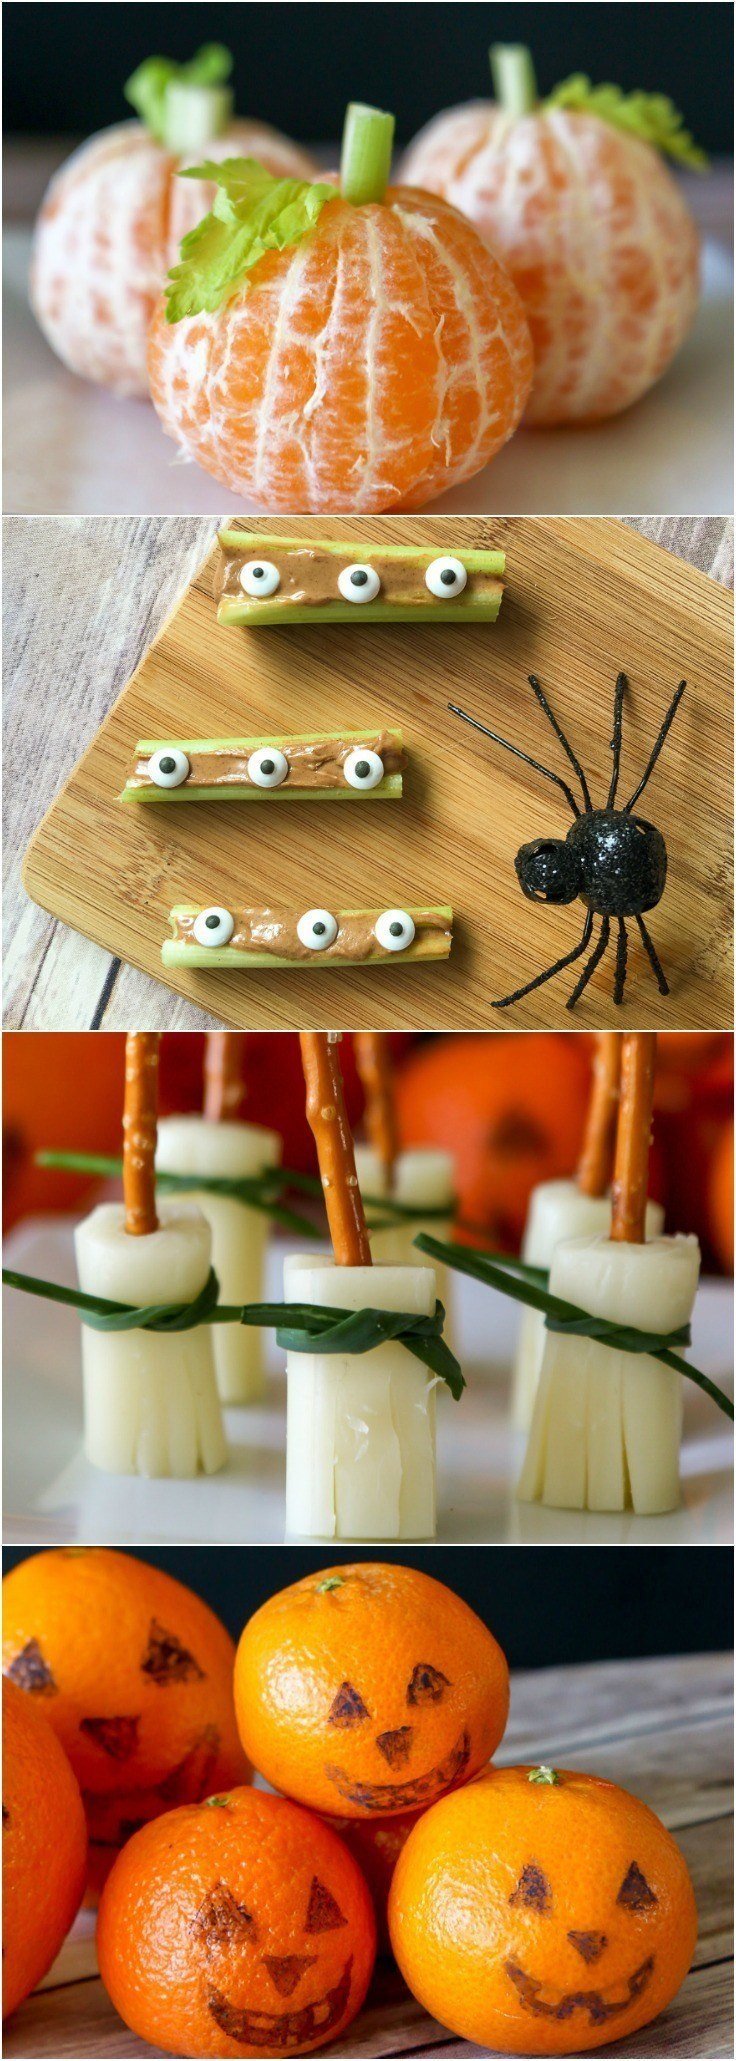 5 Easy and Healthy Halloween Snacks for Kids - La Jolla Mom